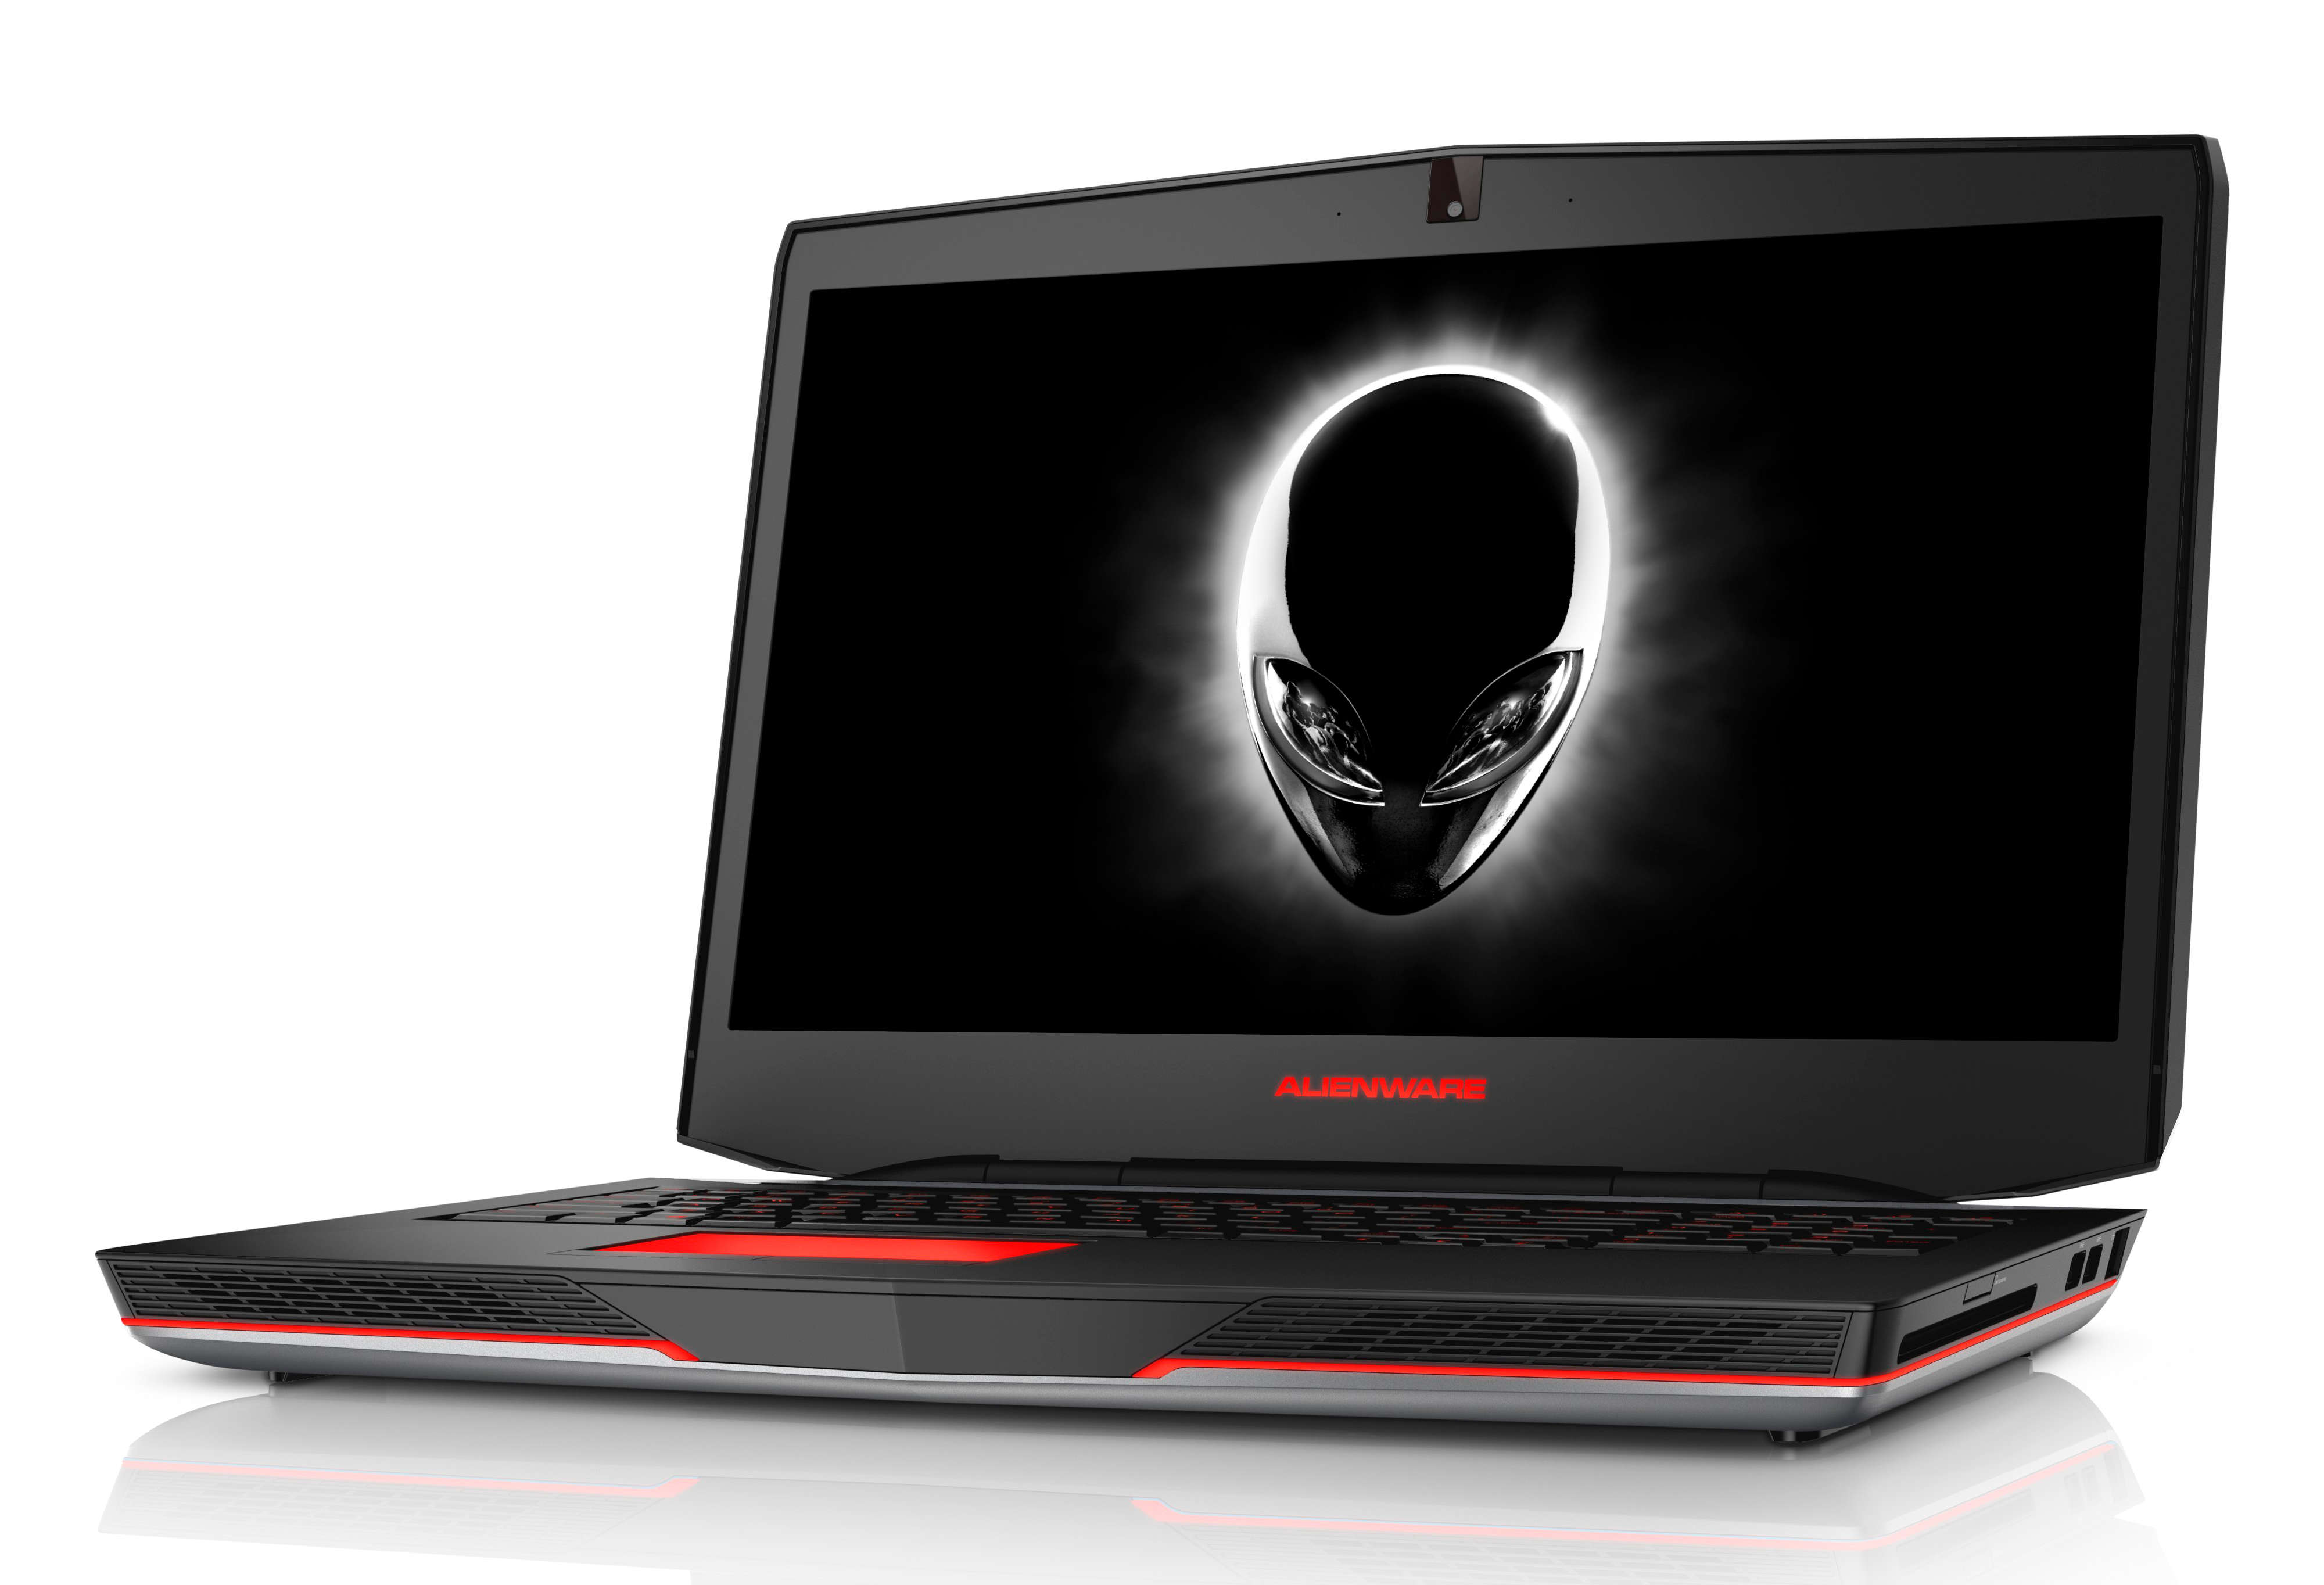 Wallpaper Laptop Price in Malaysia Acer Laptop Price in Malaysia 4000x2728